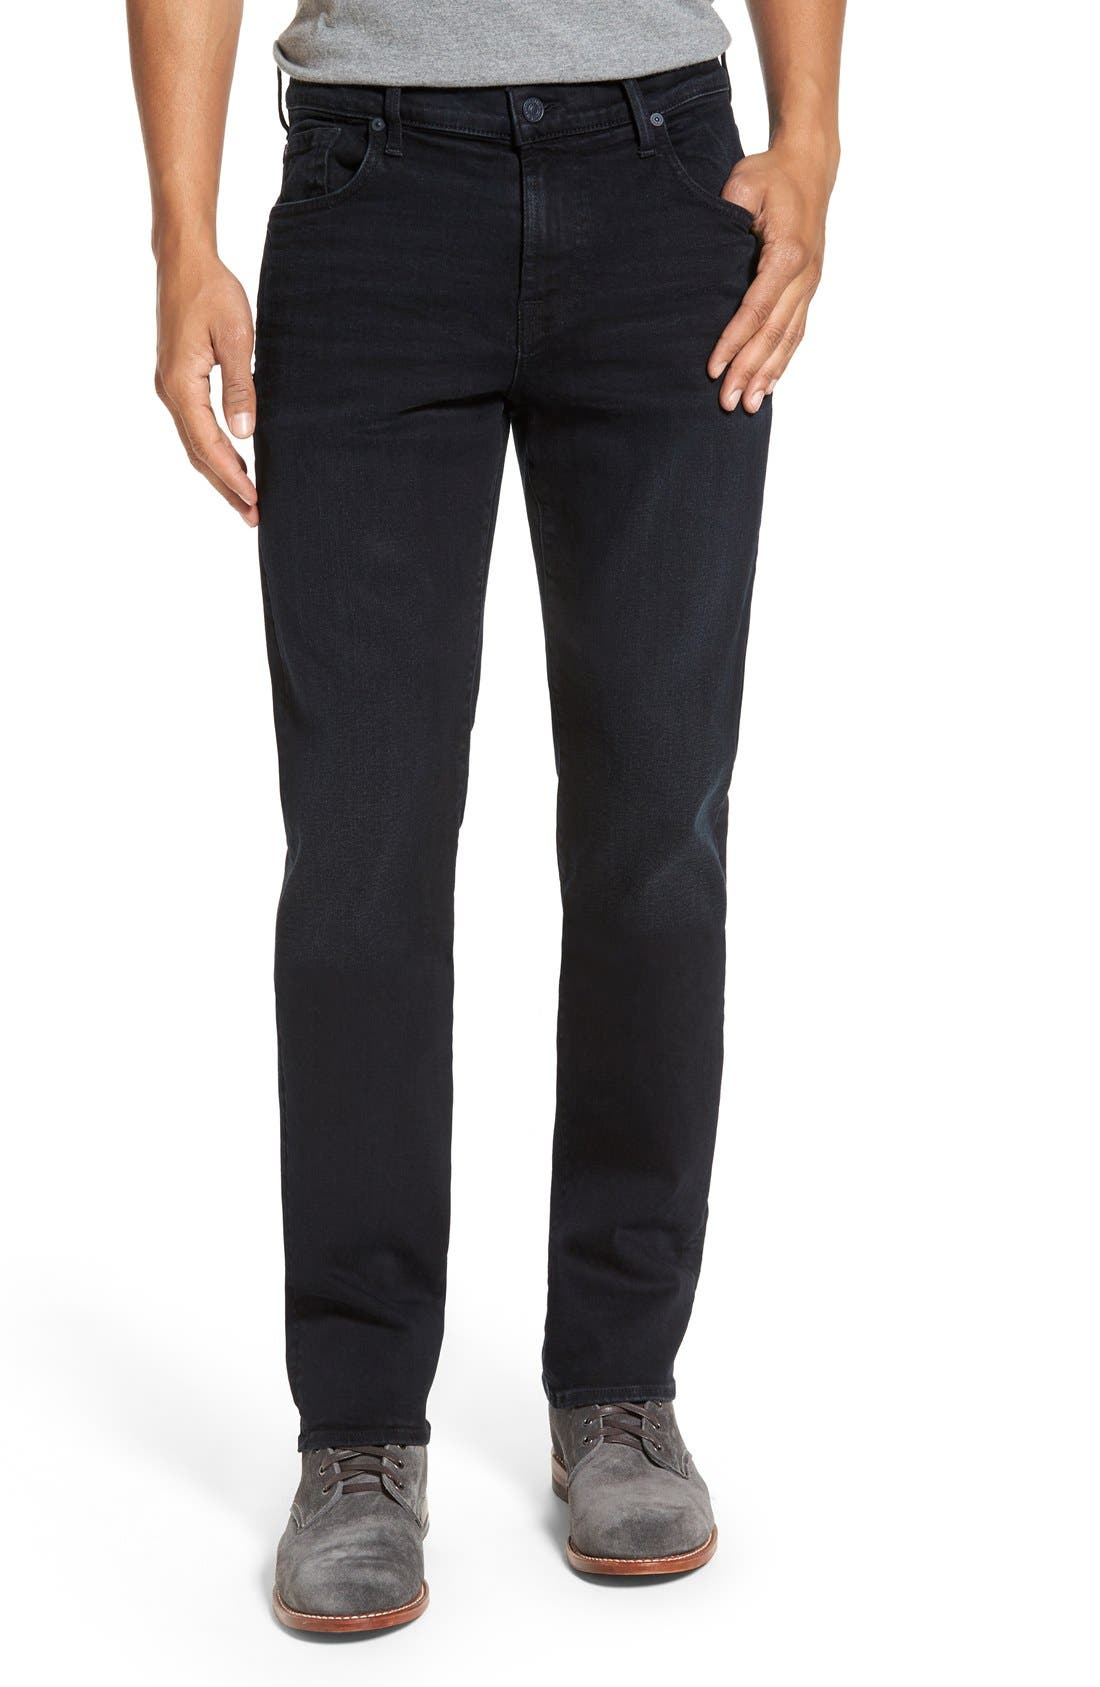 Main Image - 7 For All Mankind® 'Standard - Luxe Performance' Straight Leg Jeans (Stockholme)